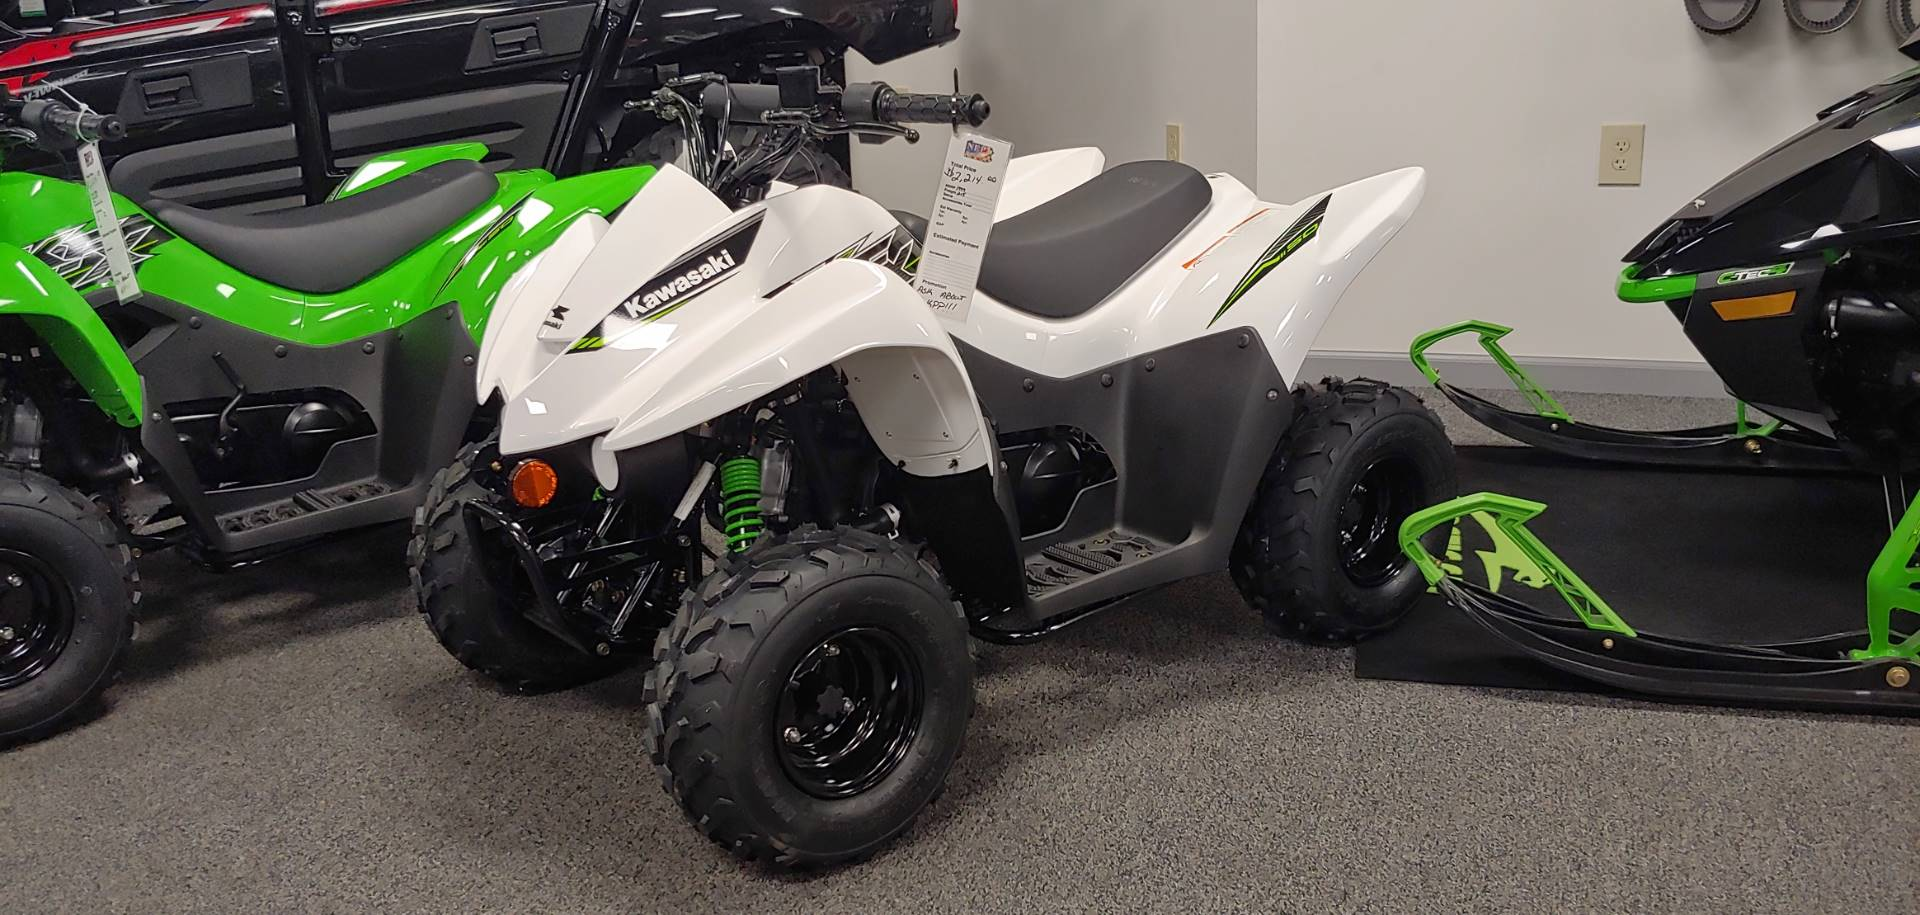 2019 Kawasaki KFX 50 for sale 2024